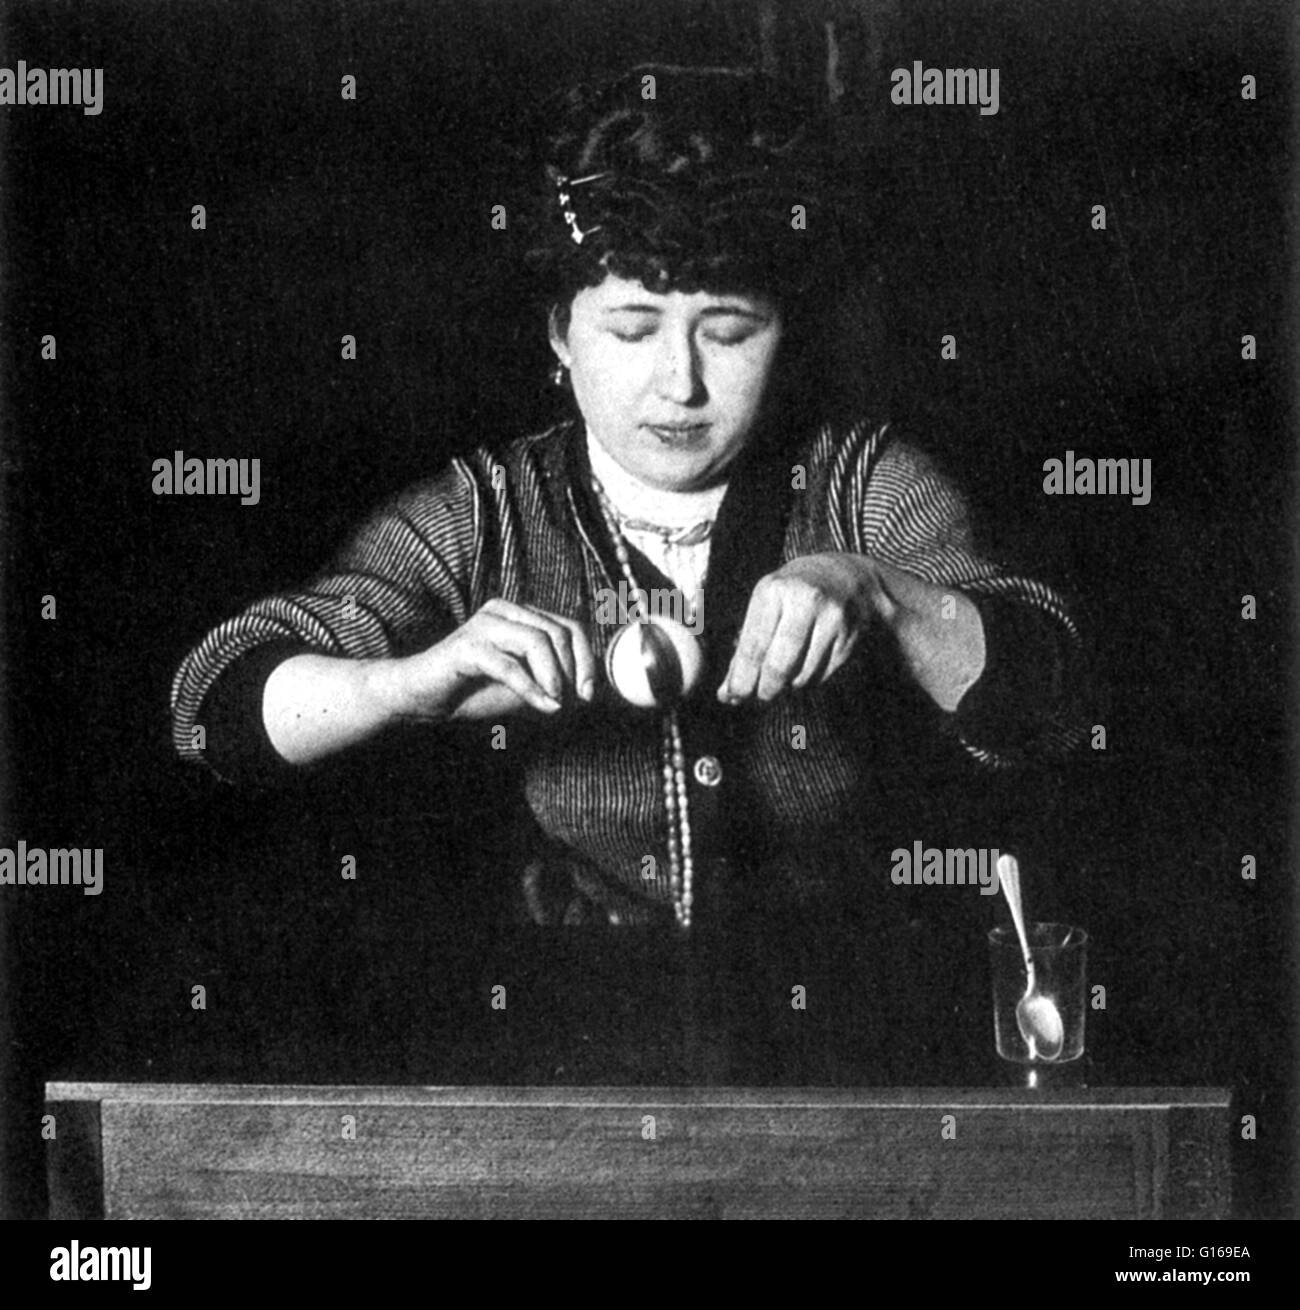 Tomczyk levitating a rubber ball. Stanislawa Tomczyk was a Polish Spiritualist medium in the early 20th century. - Stock Image